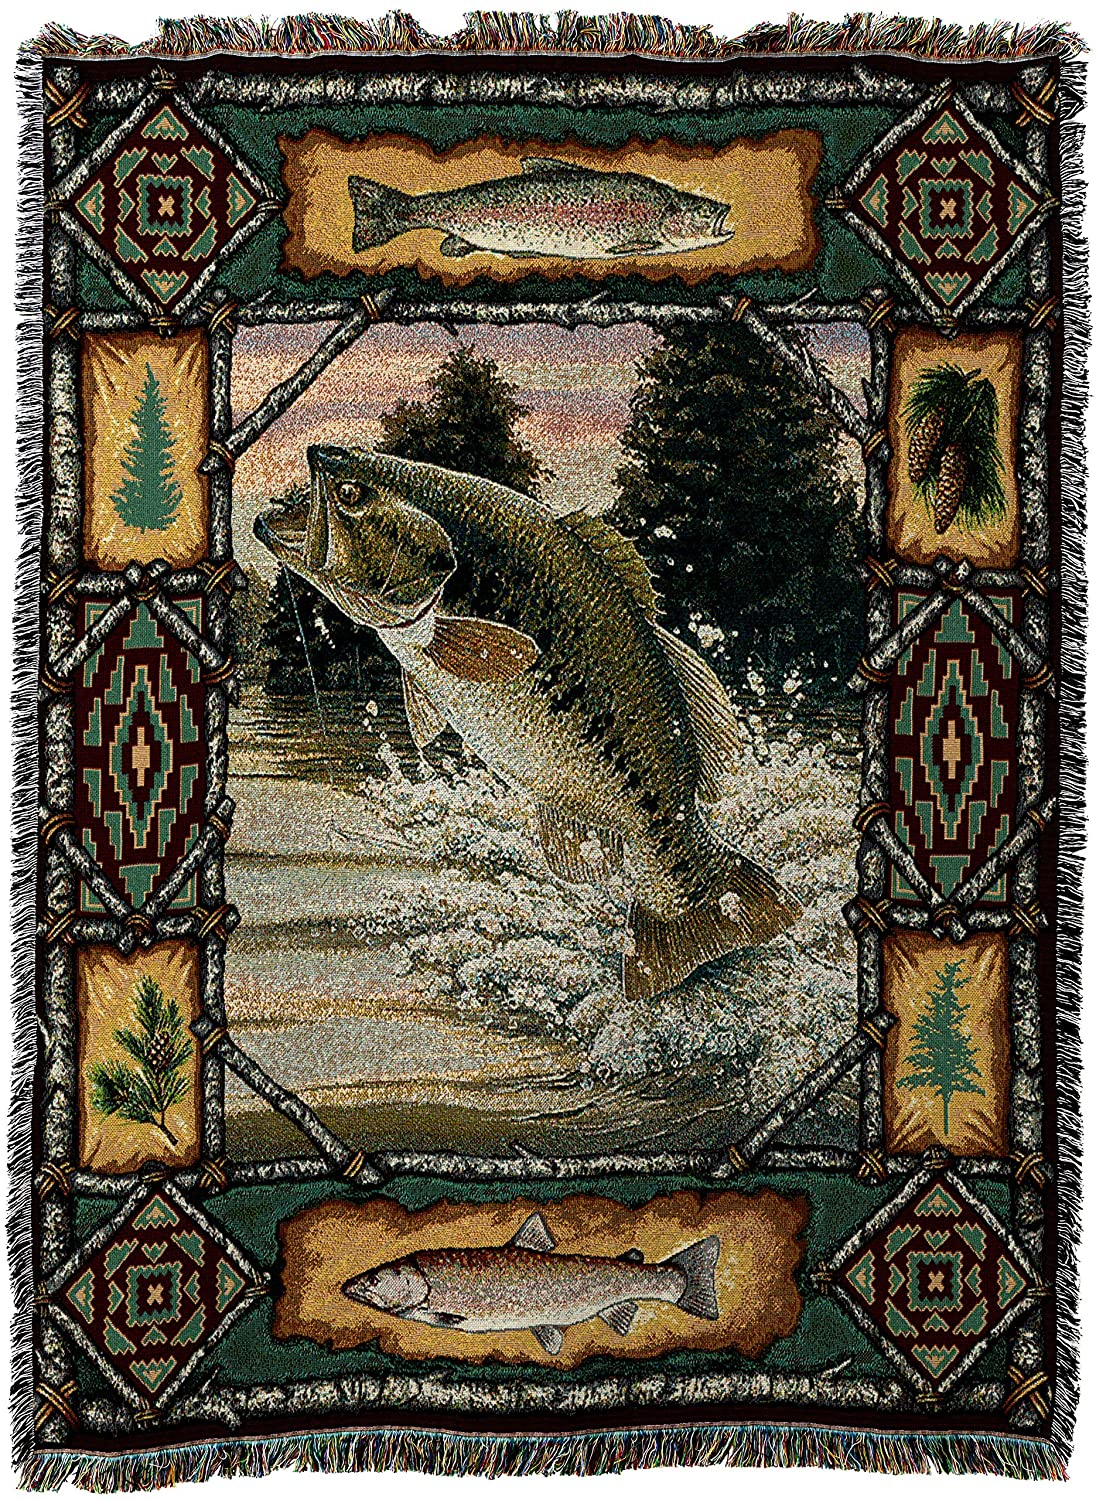 Pure Country Weavers - Fish Bass Lodge Cabin Hunting Decor Woven Tapestry Throw Blanket with Fringe Cotton USA 72x54